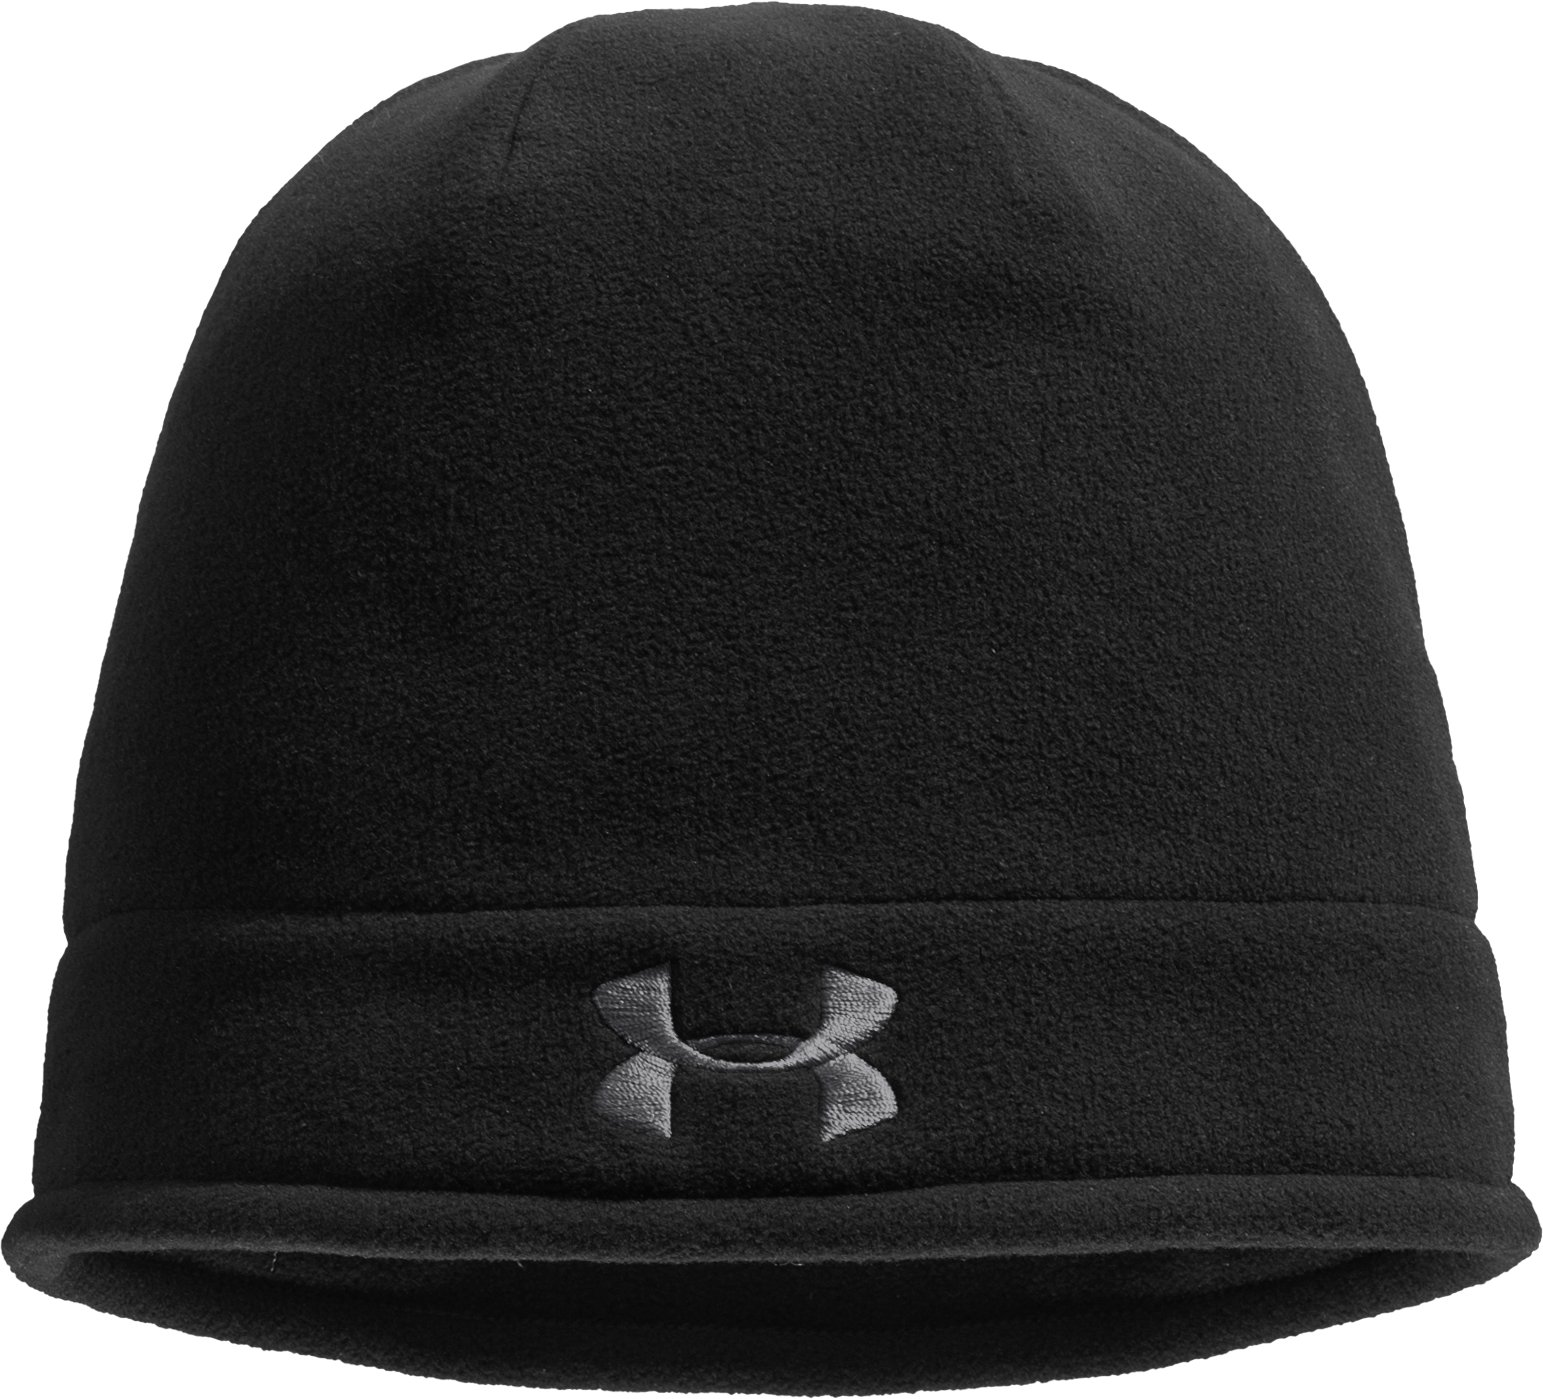 Men's ColdGear® Infrared Fleece Storm Beanie, Black